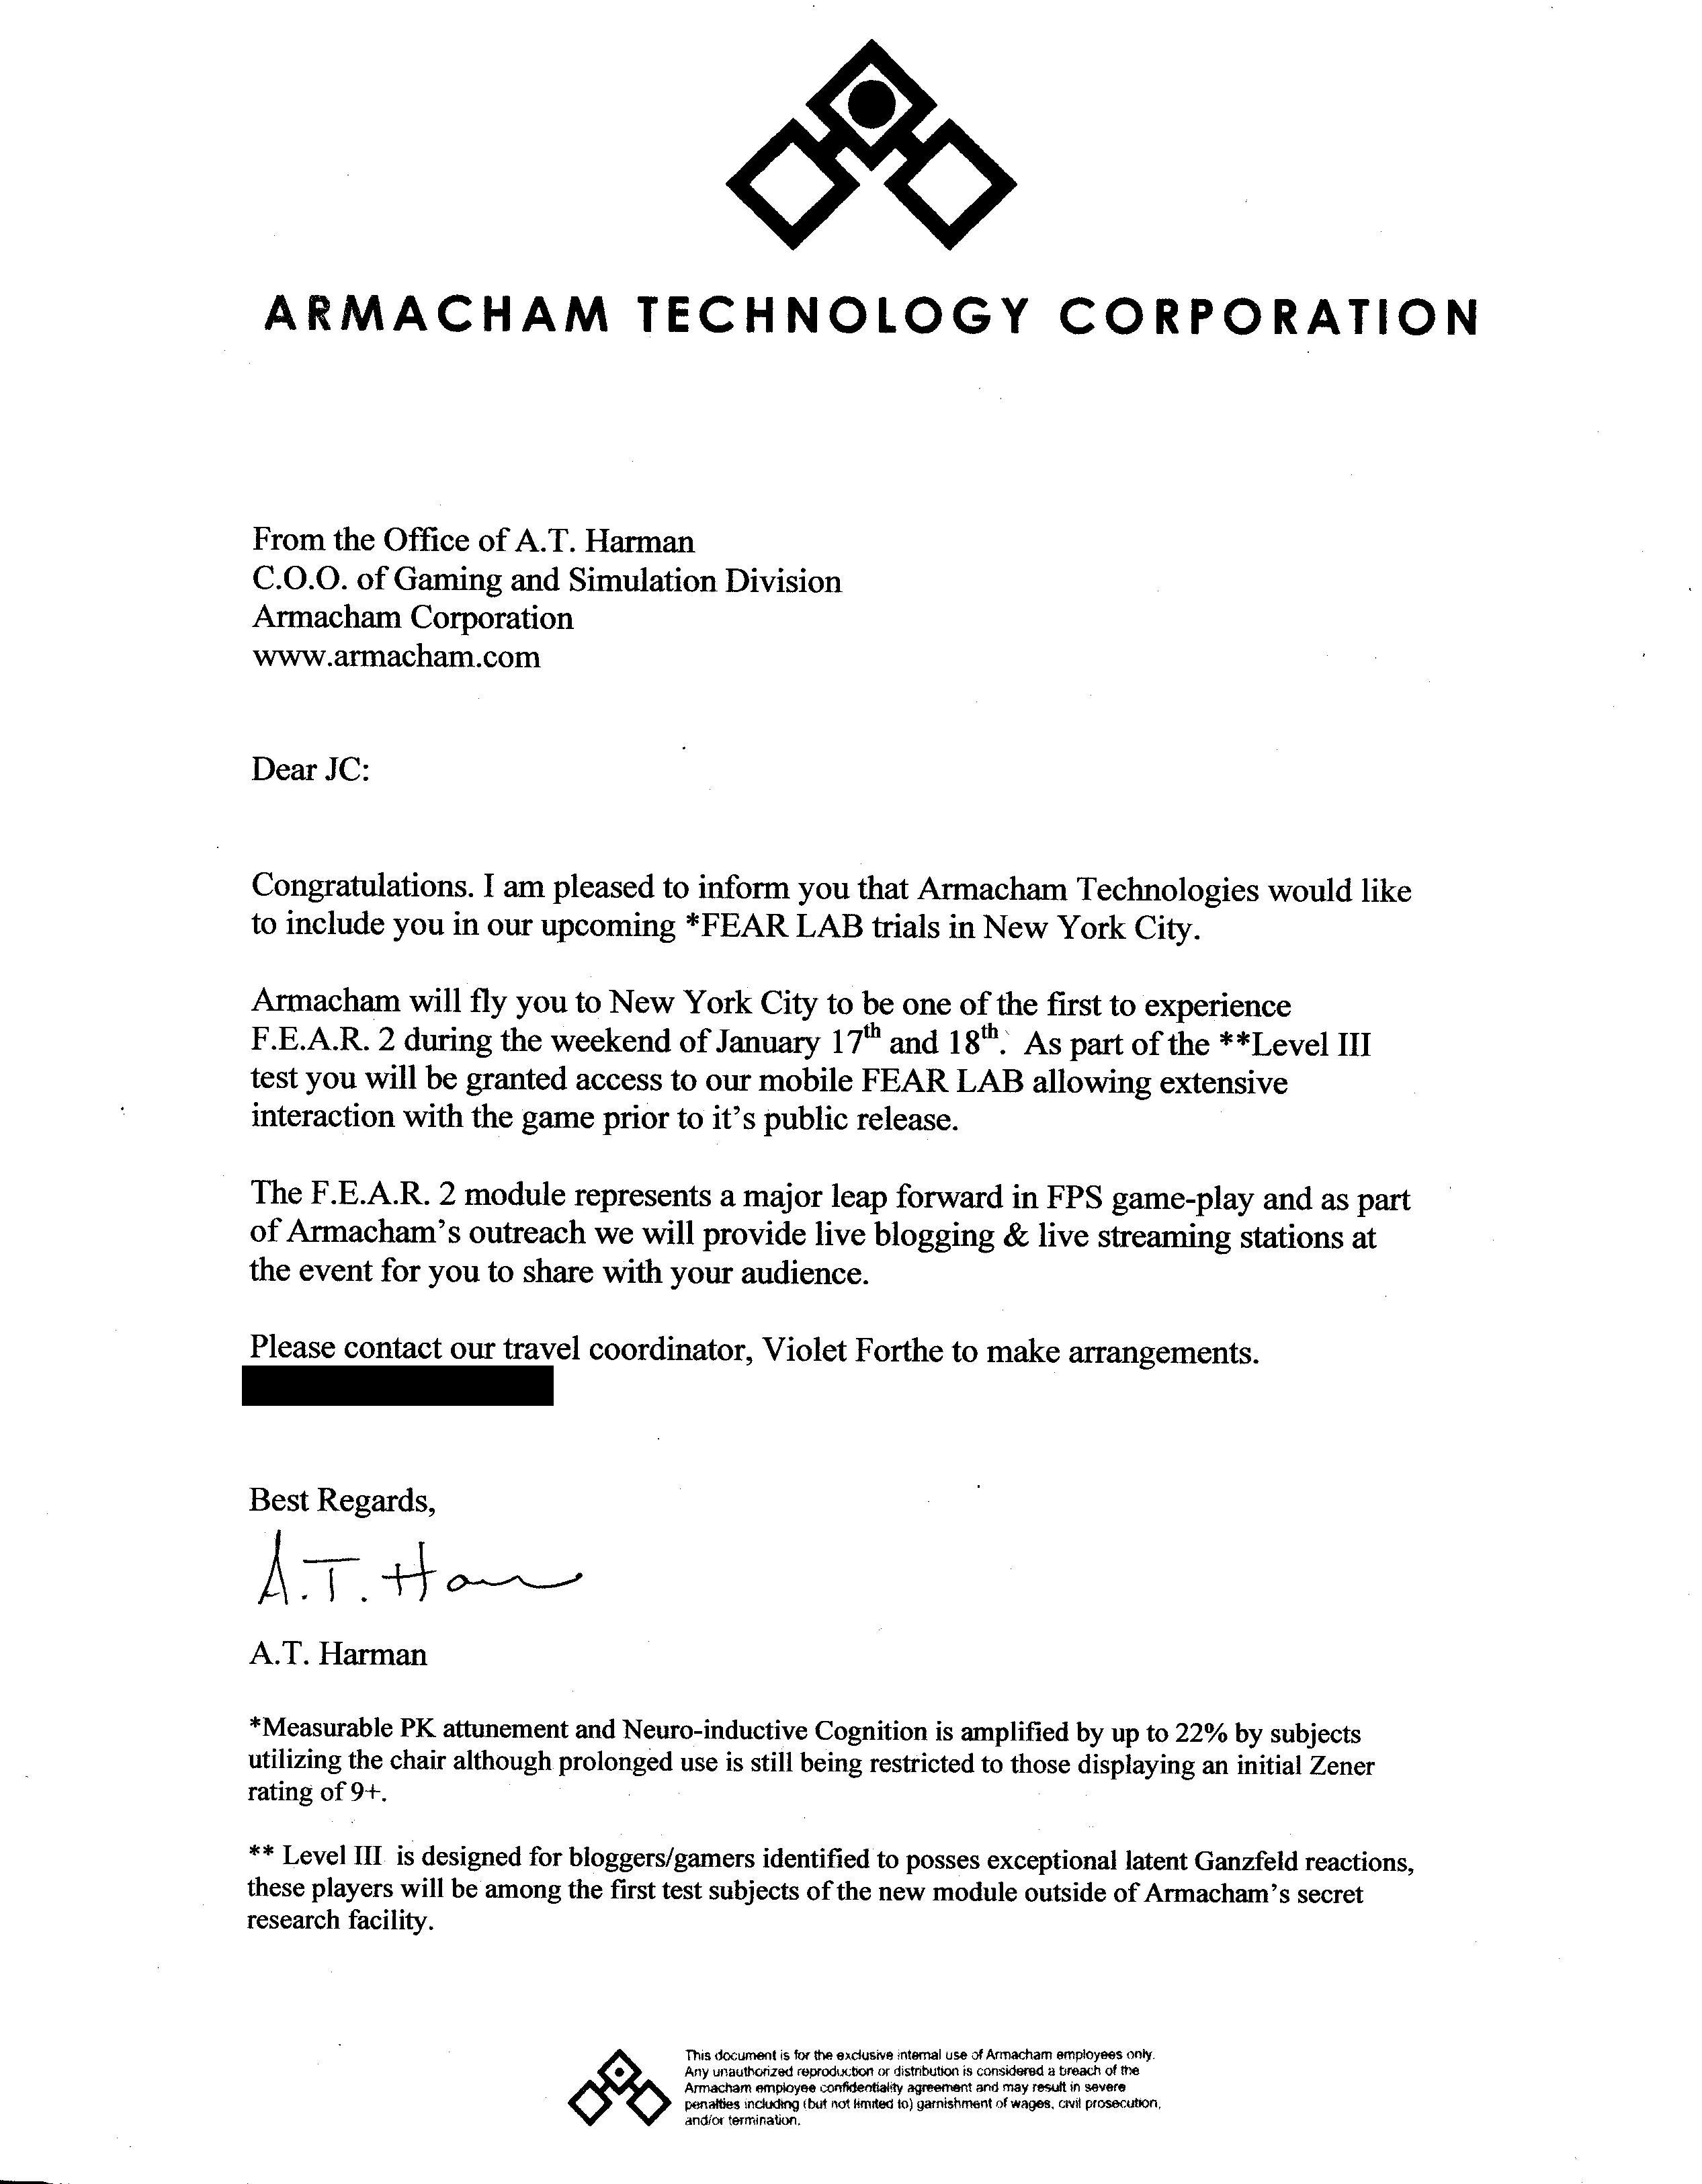 Armacham letter -- Click for larger version